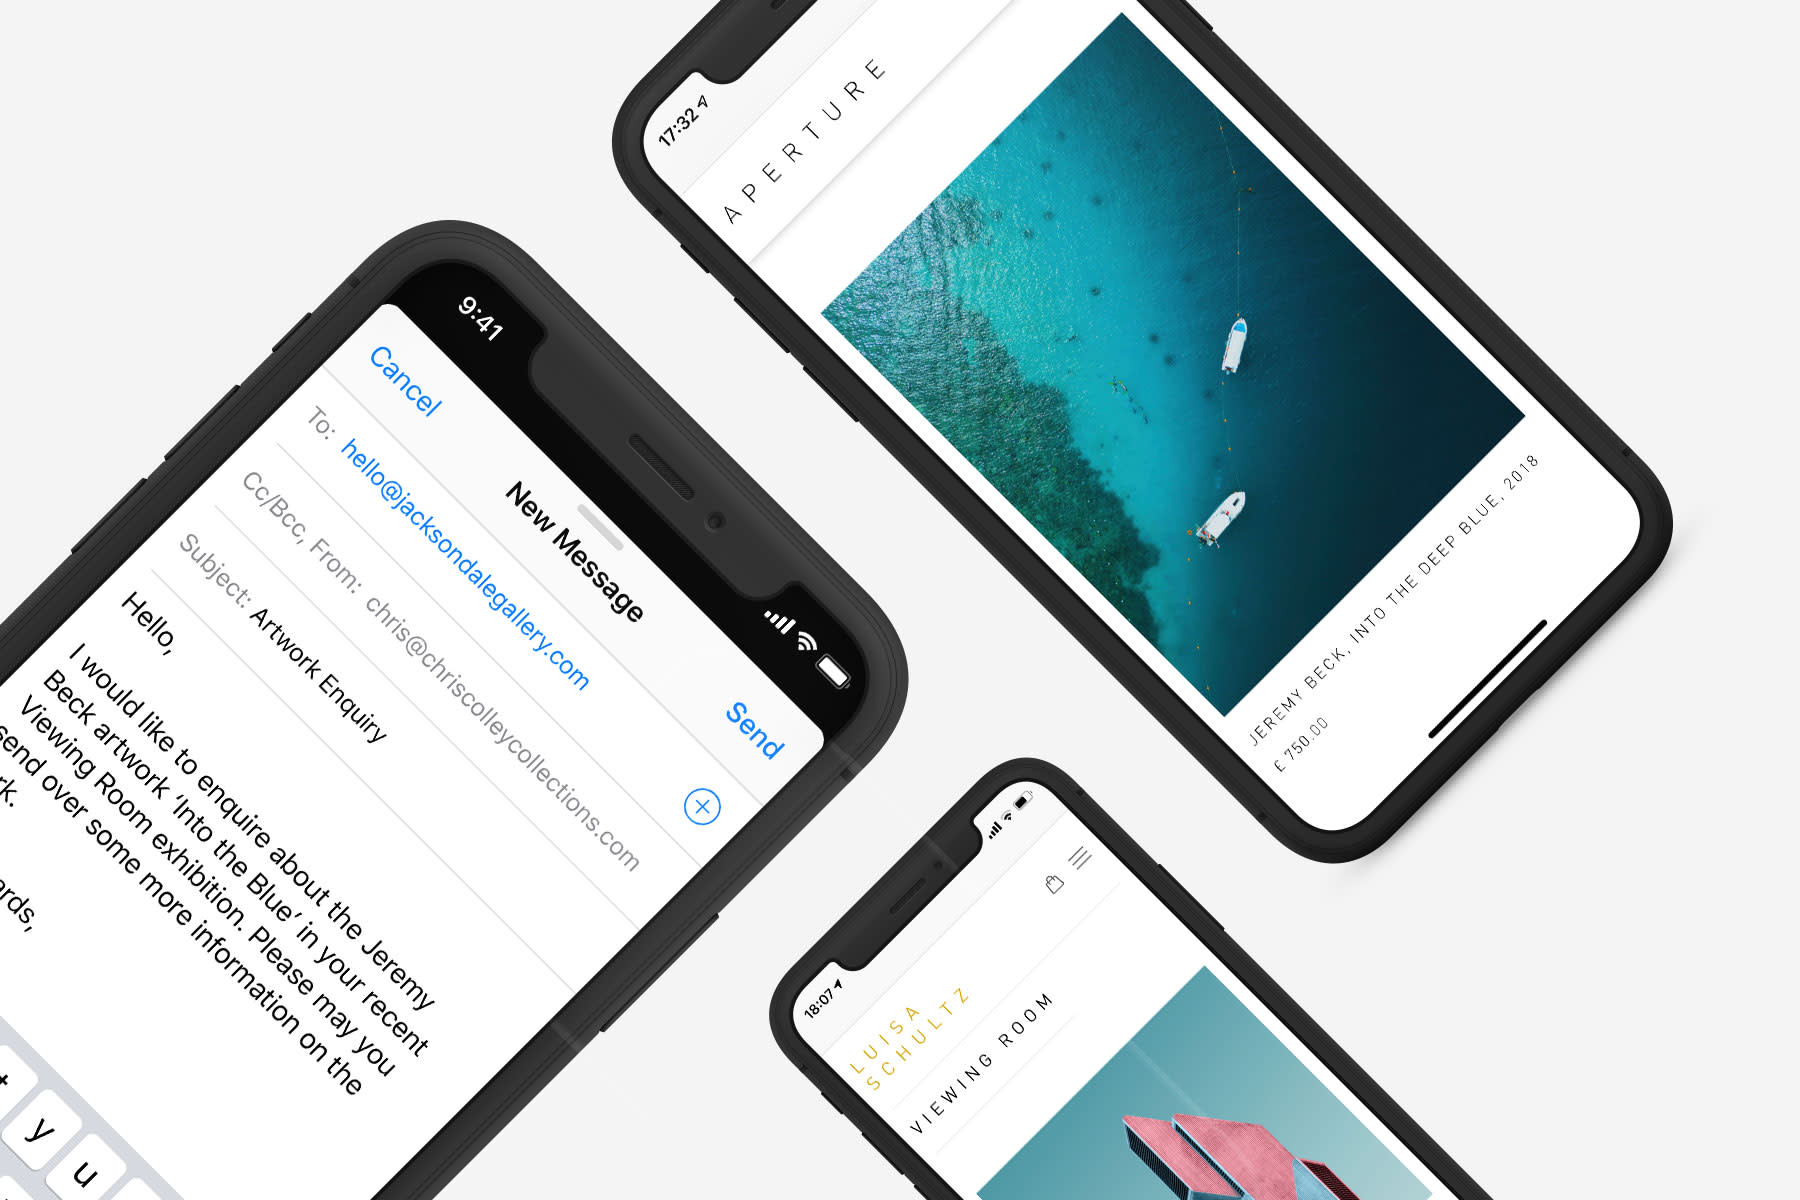 Email and website images on a mock ups of iPhones image